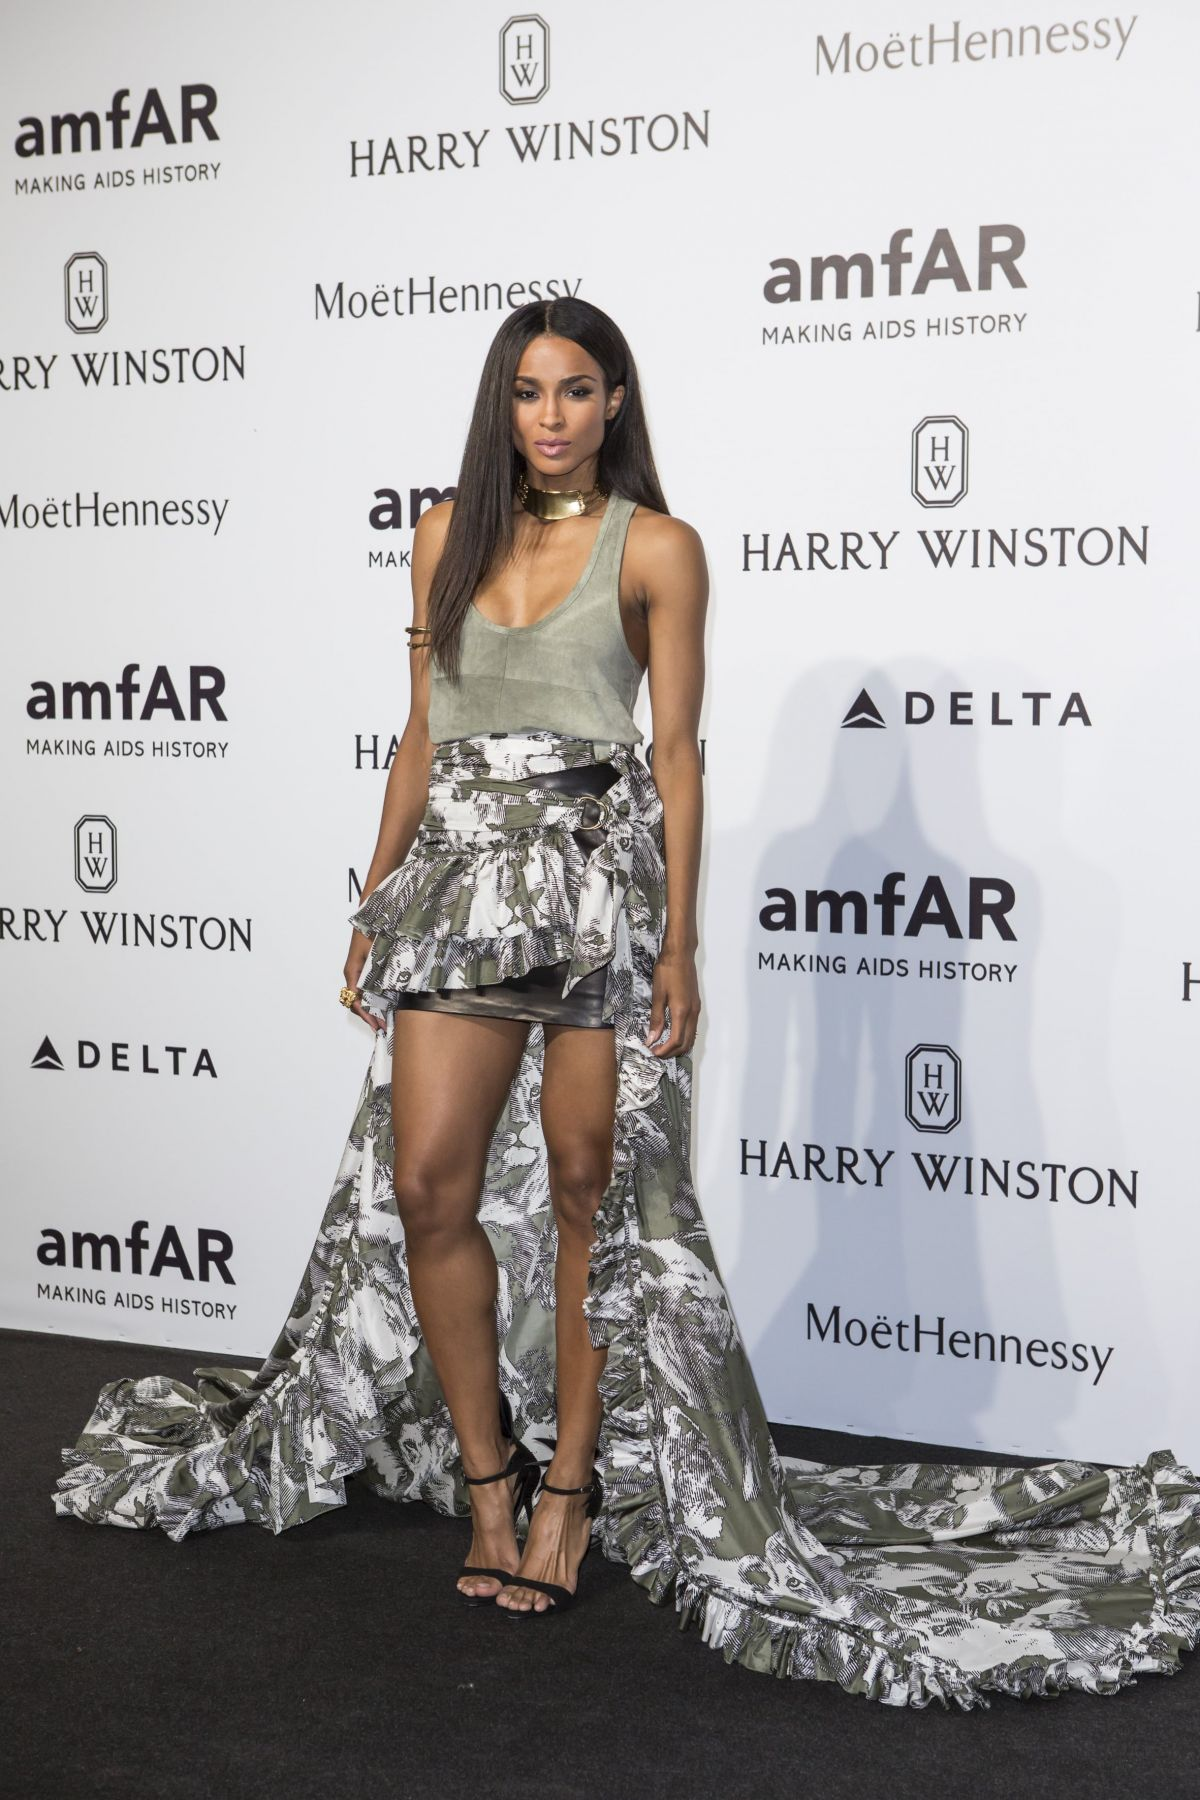 ciara-at-amfar-gala-in-milan-09-26-2015_1